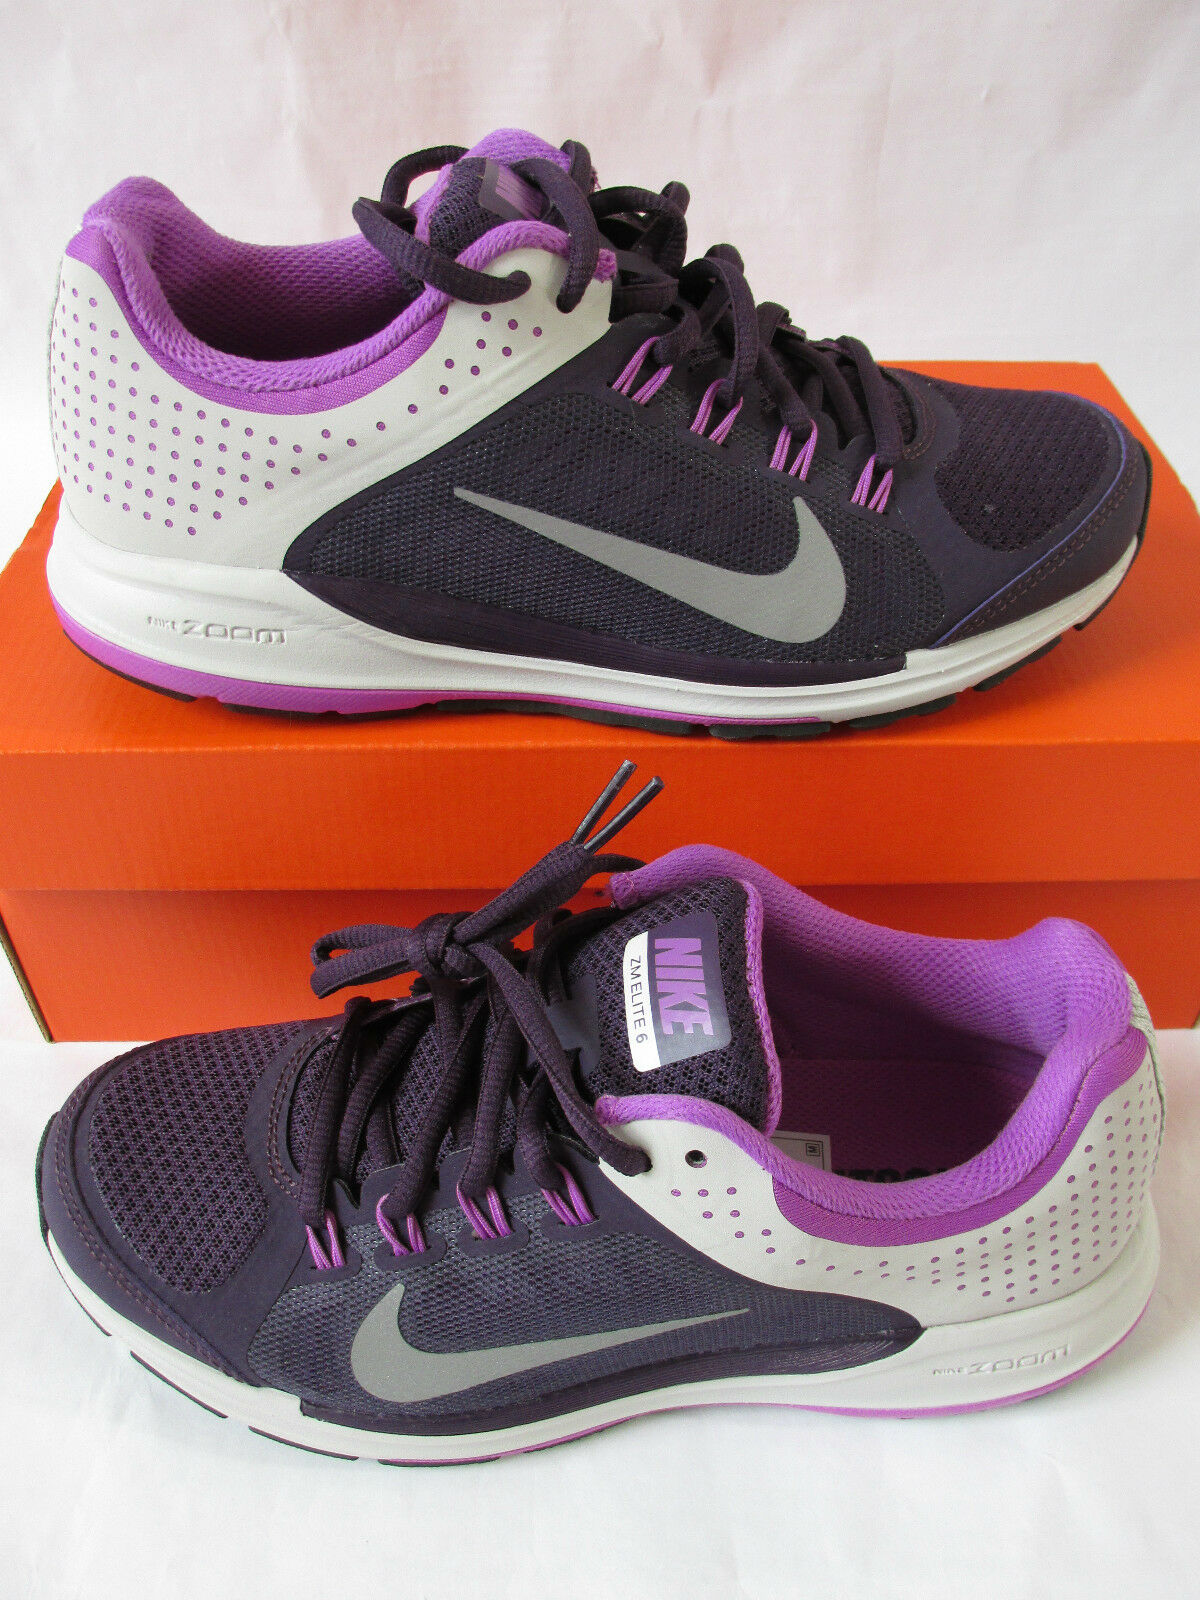 nike  Femme  zoom elite+ 6 running trainers 554728 005 sneakers  chaussures